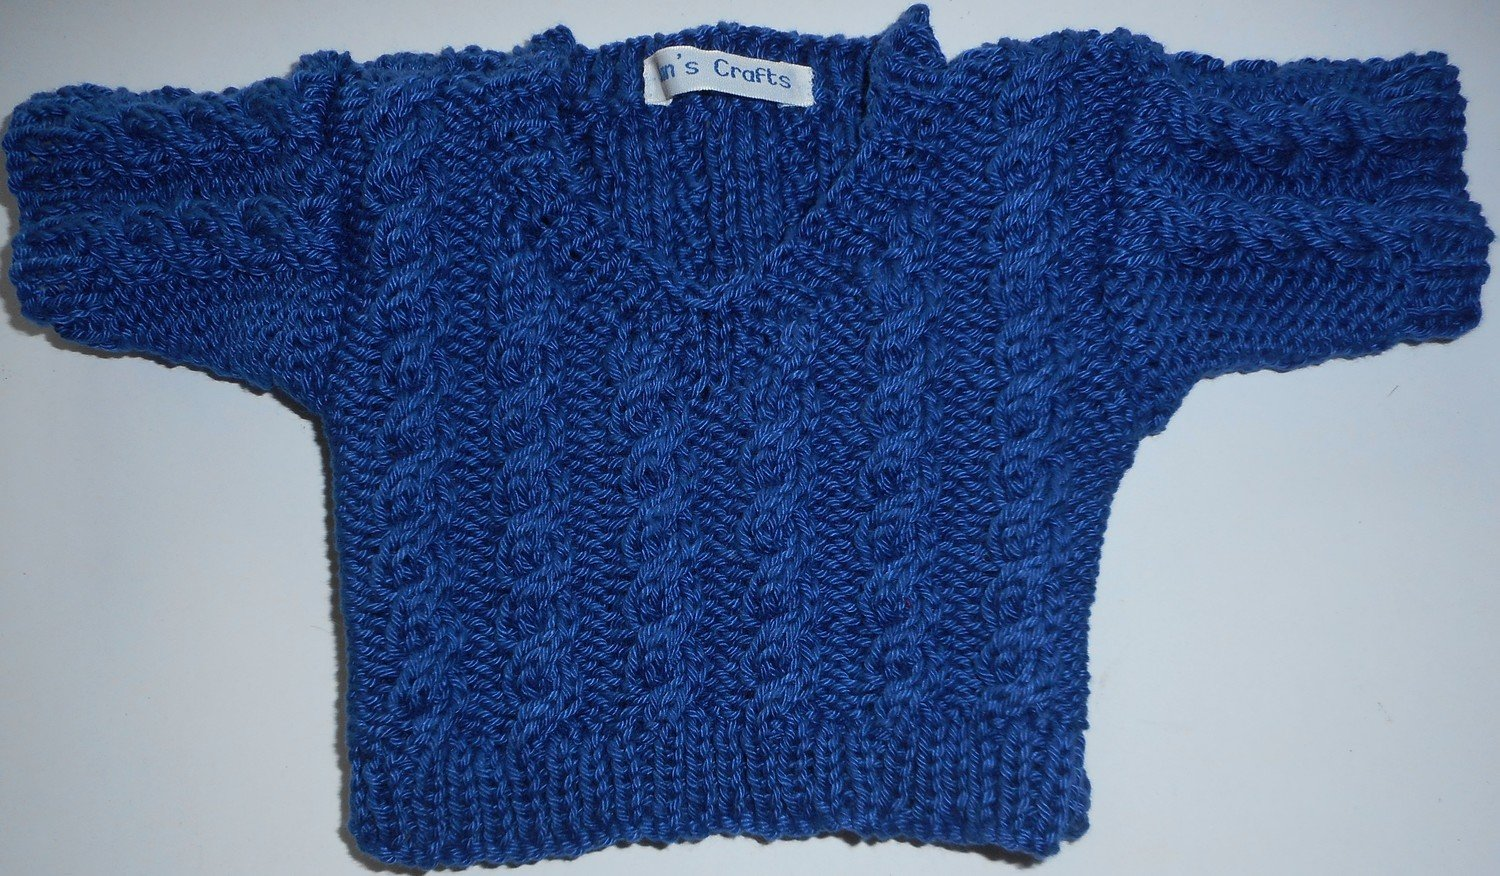 Jumper, blue cable v neck - bear 36cm/ 14 inches high